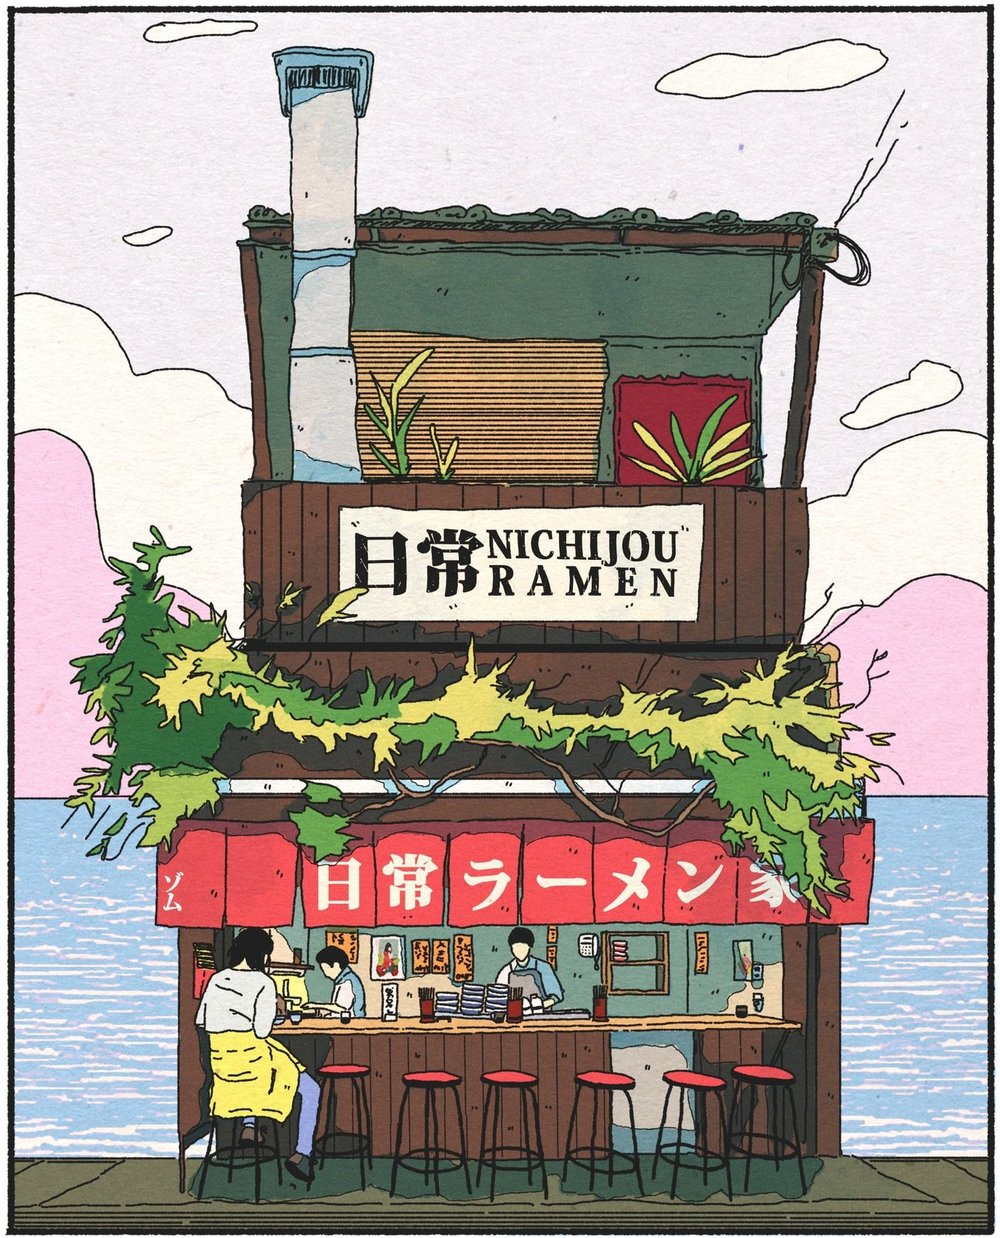 NICHIJOU RAMEN VERSION 2 (WITH BORDER AND BG).jpg